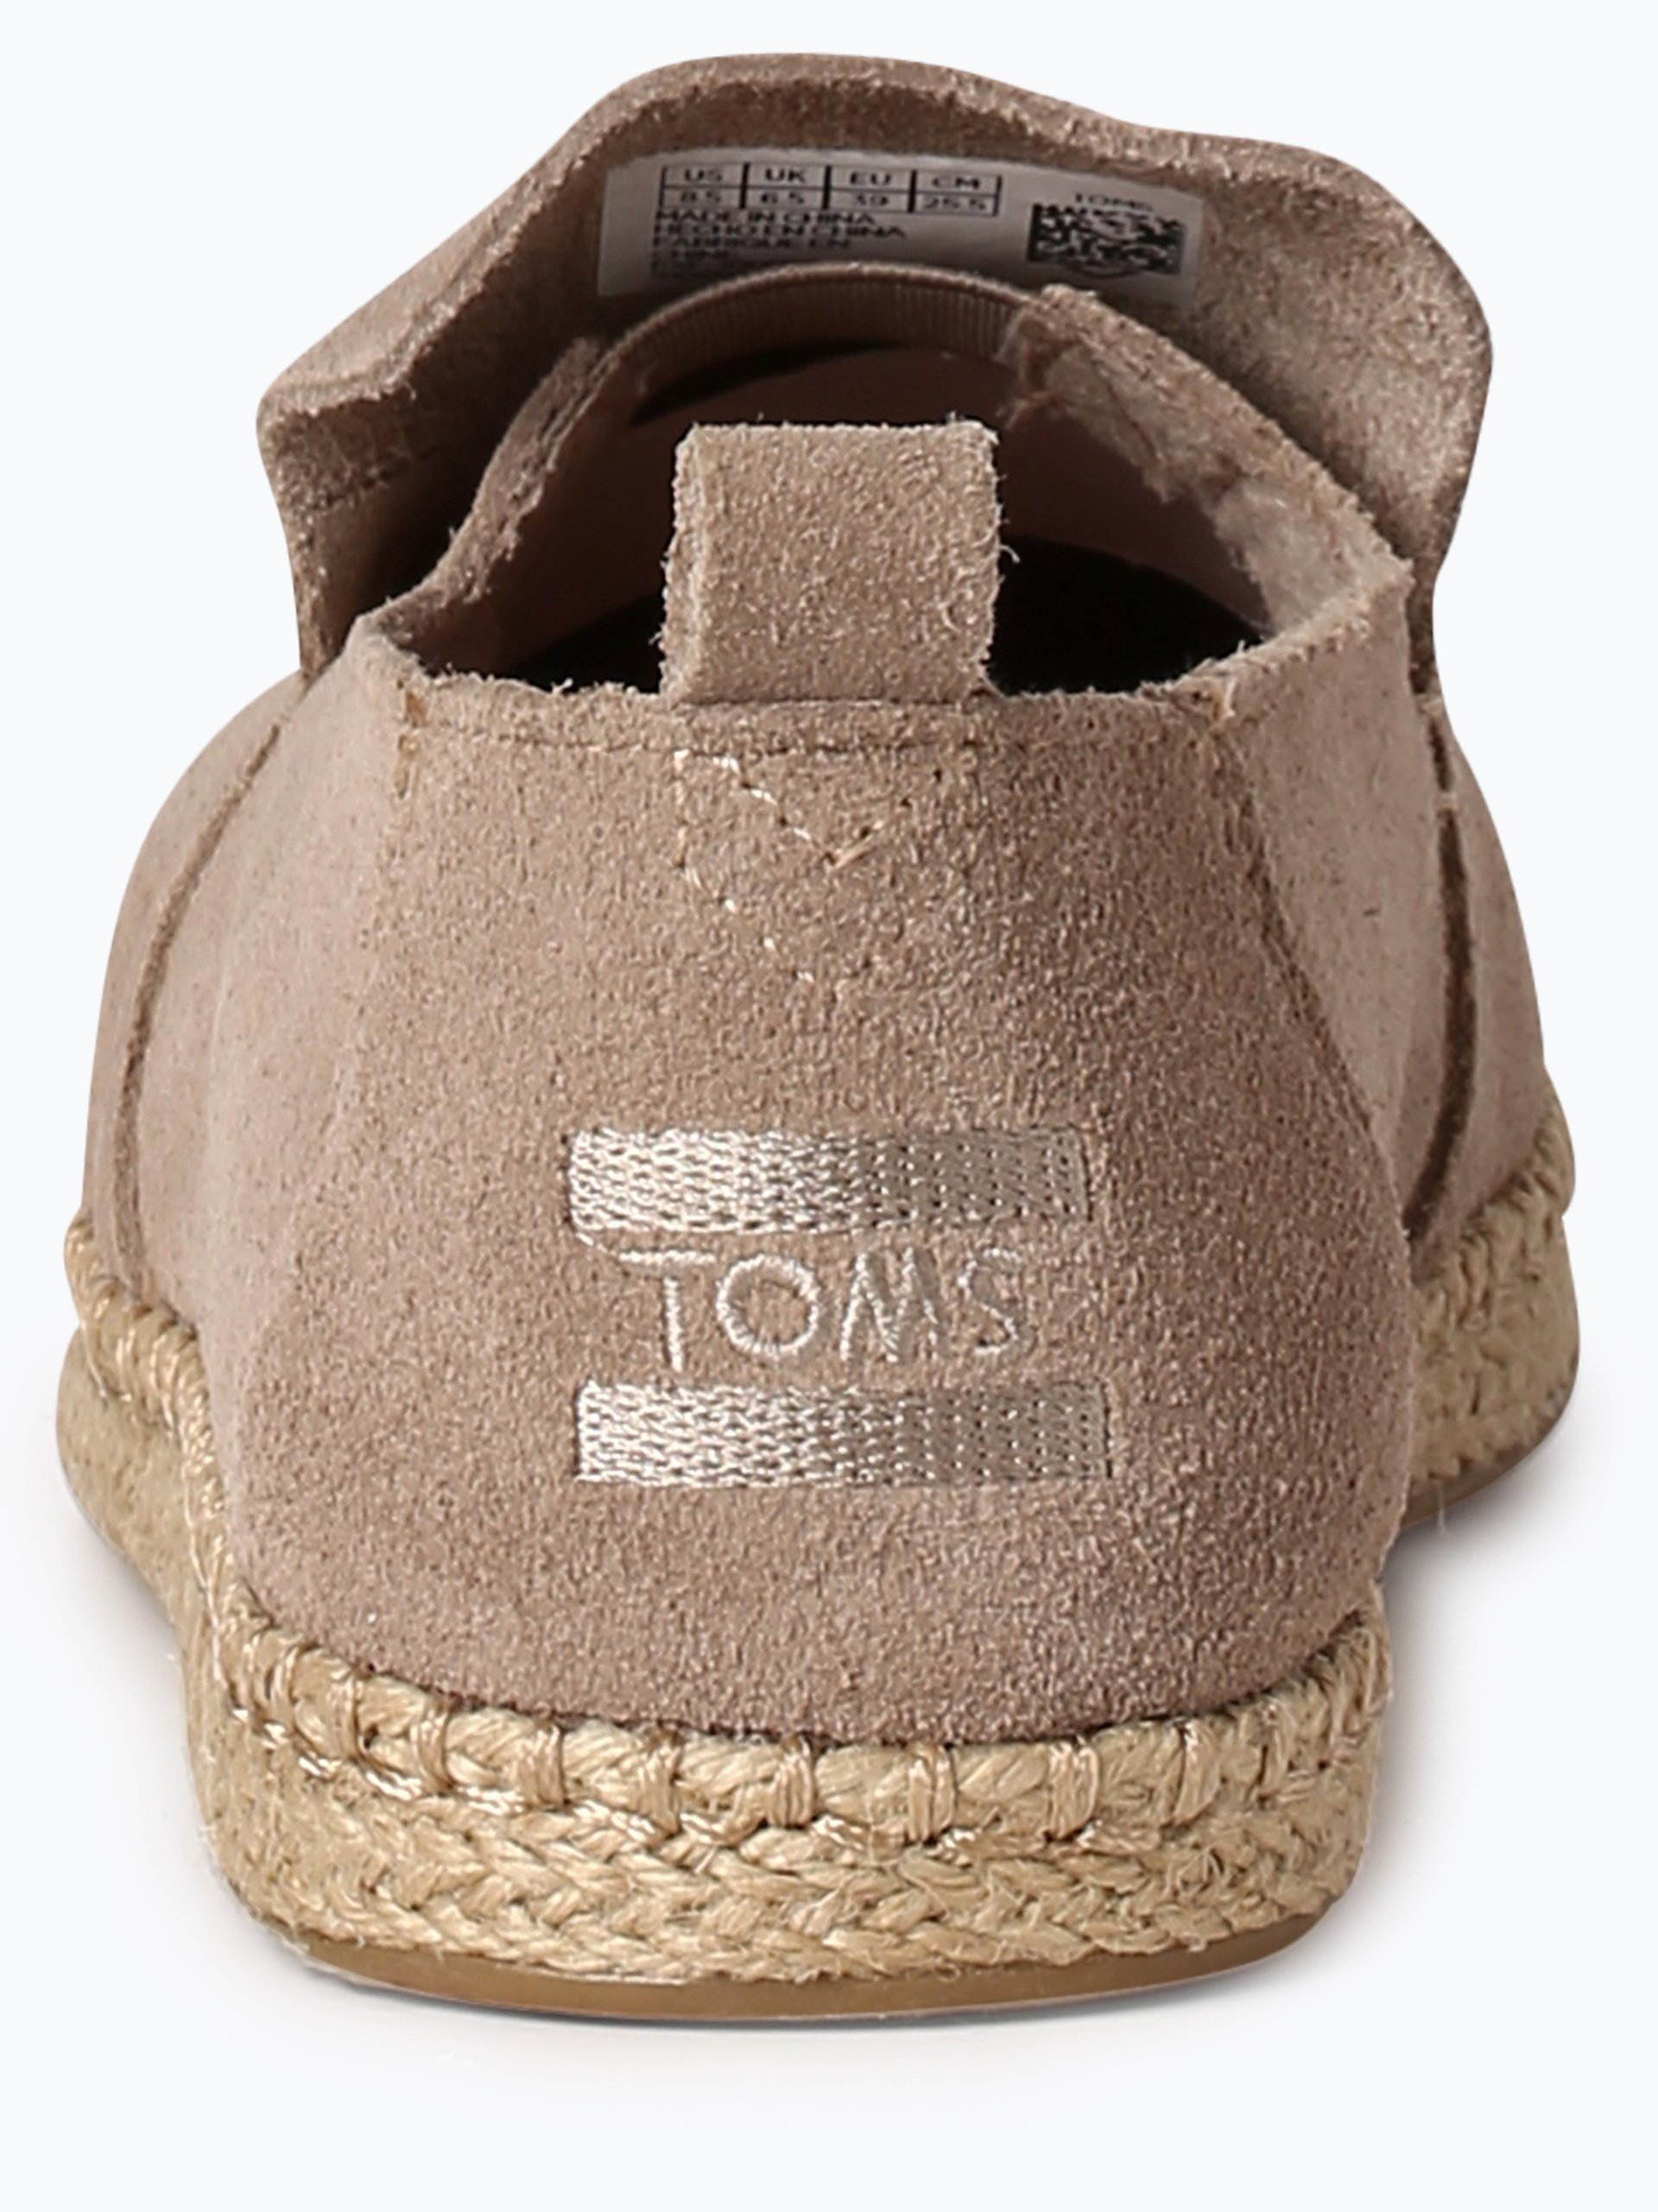 toms damen espadrilles aus leder taupe uni online kaufen peek und cloppenburg de. Black Bedroom Furniture Sets. Home Design Ideas